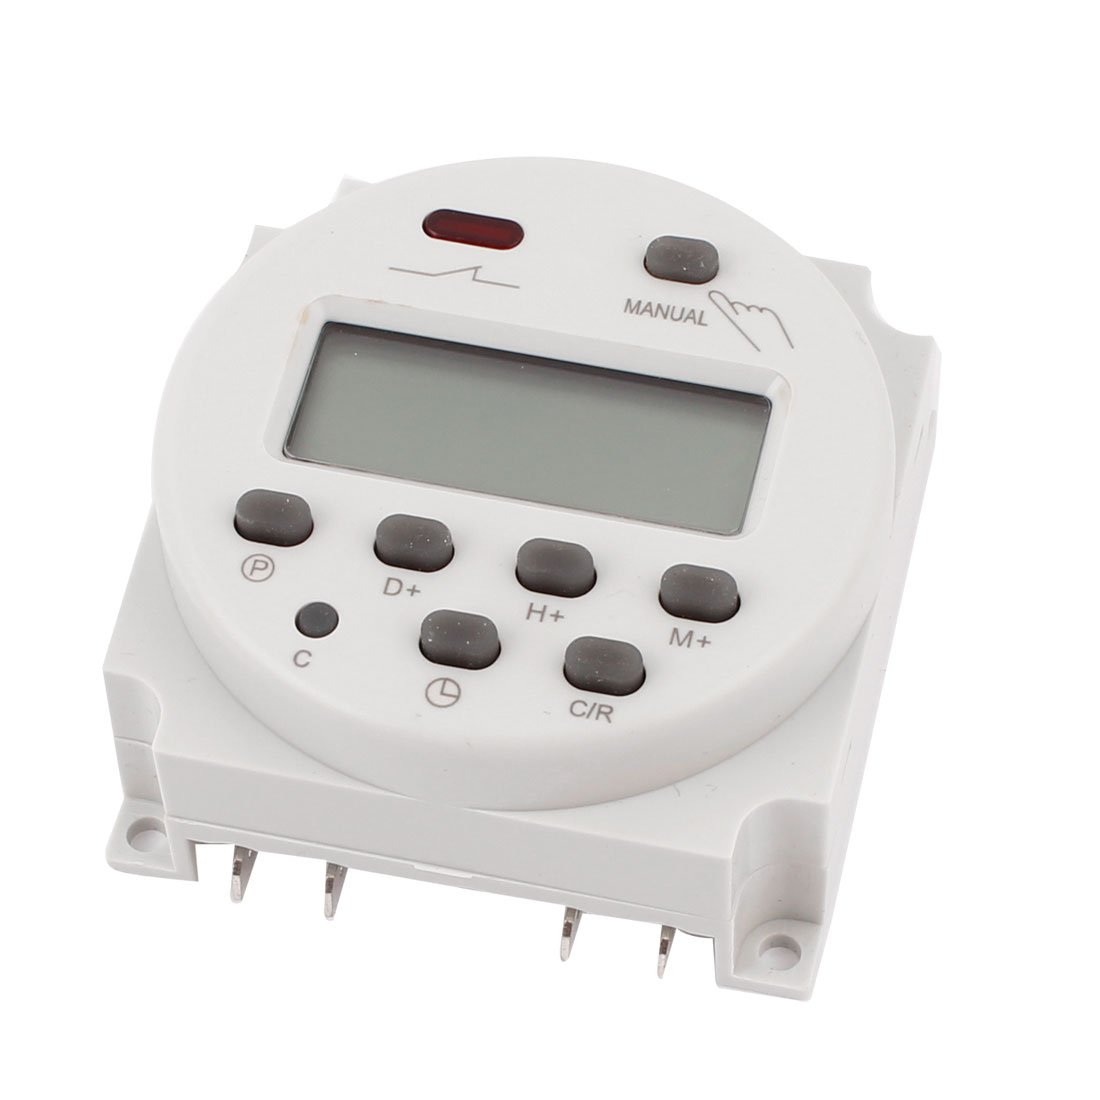 LCD Digital Programmable Power Timer Switch Time Relay 16A AC/DC 110V lcd digital programmable power timer switch time relay 16a ac dc 110v